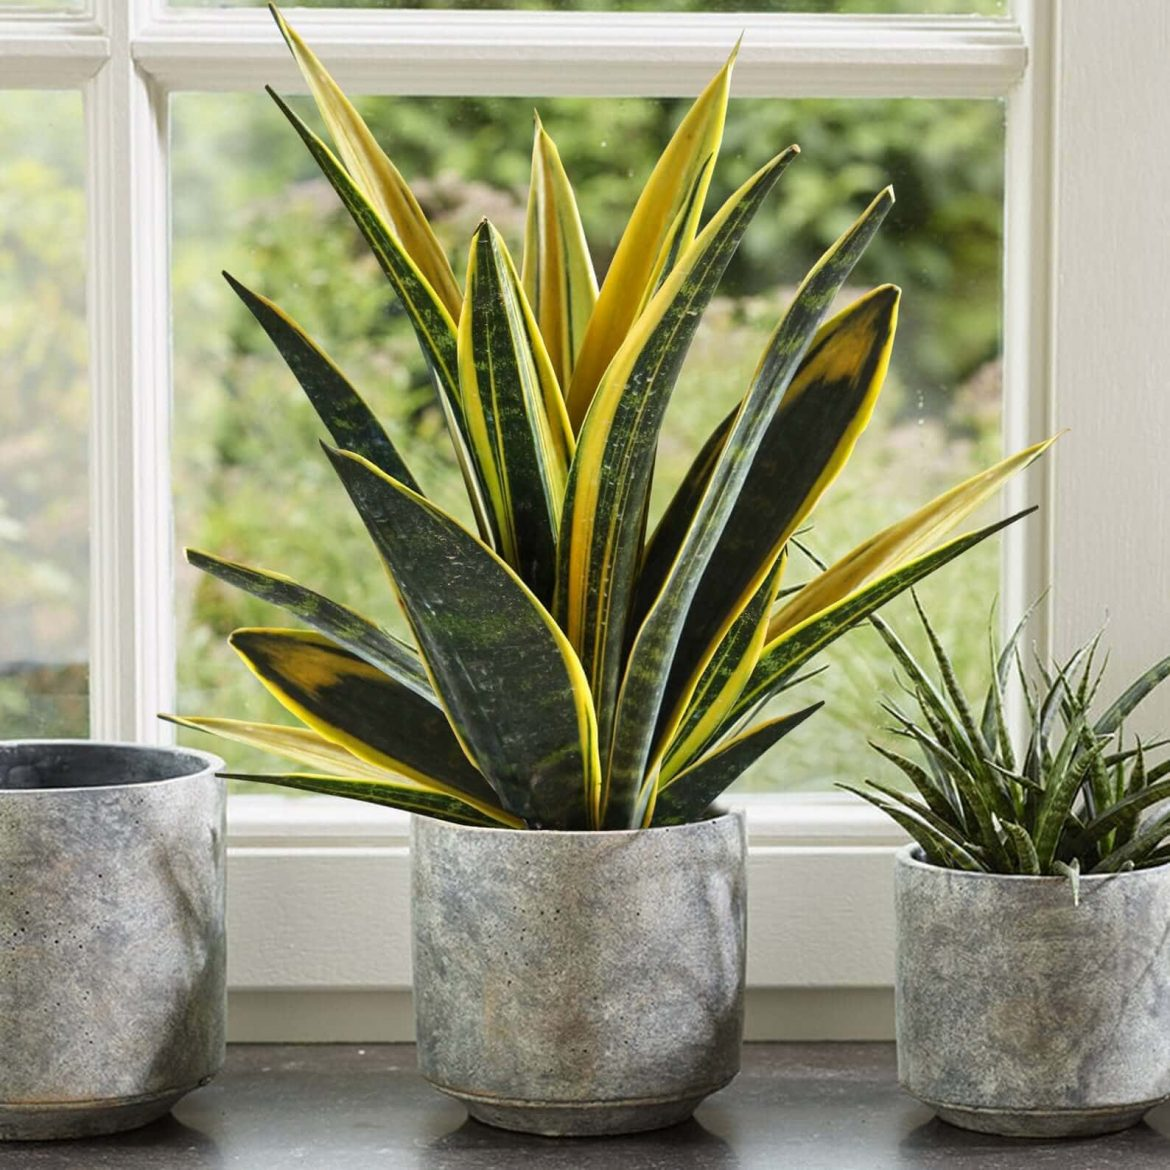 Where to Buy Snake Plants (10 Best Delivery Options ...